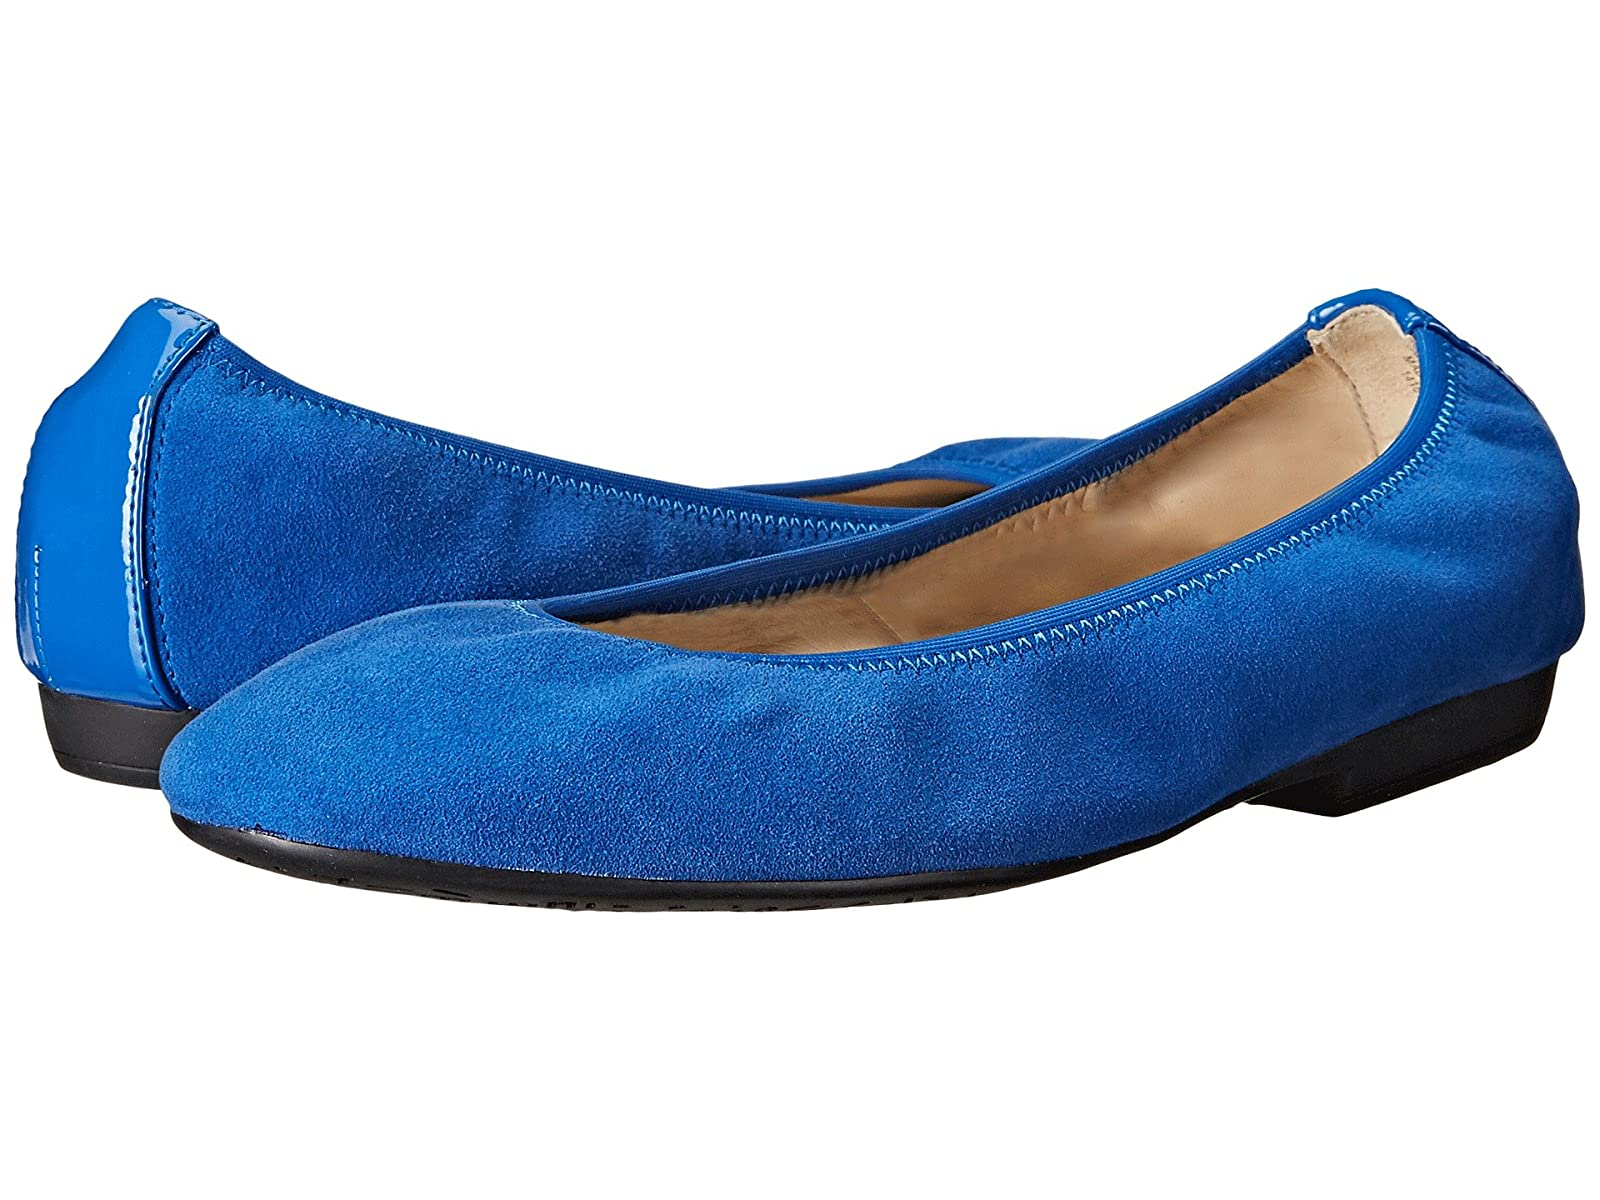 Nine West GiovediCheap and distinctive eye-catching shoes